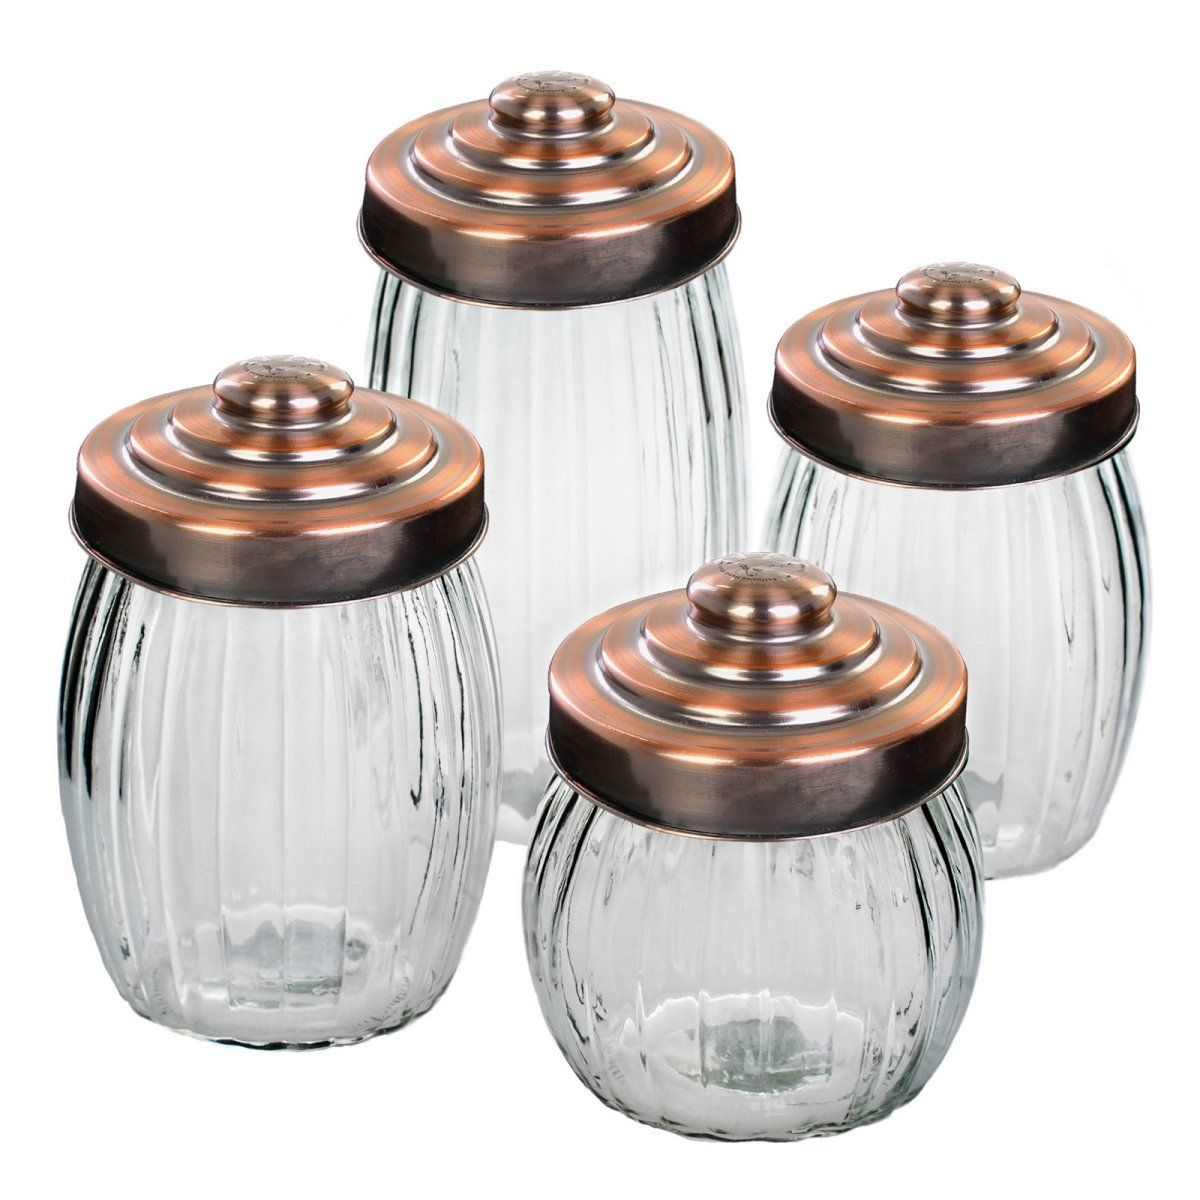 See how storage pieces designed for other rooms in the house transition easily into the bathroom space. The bathroom is a great place to try kitchen canisters as holders for bath salts, or use Global Amici Parthenon Glass Jar - Set of 4 is $44.99